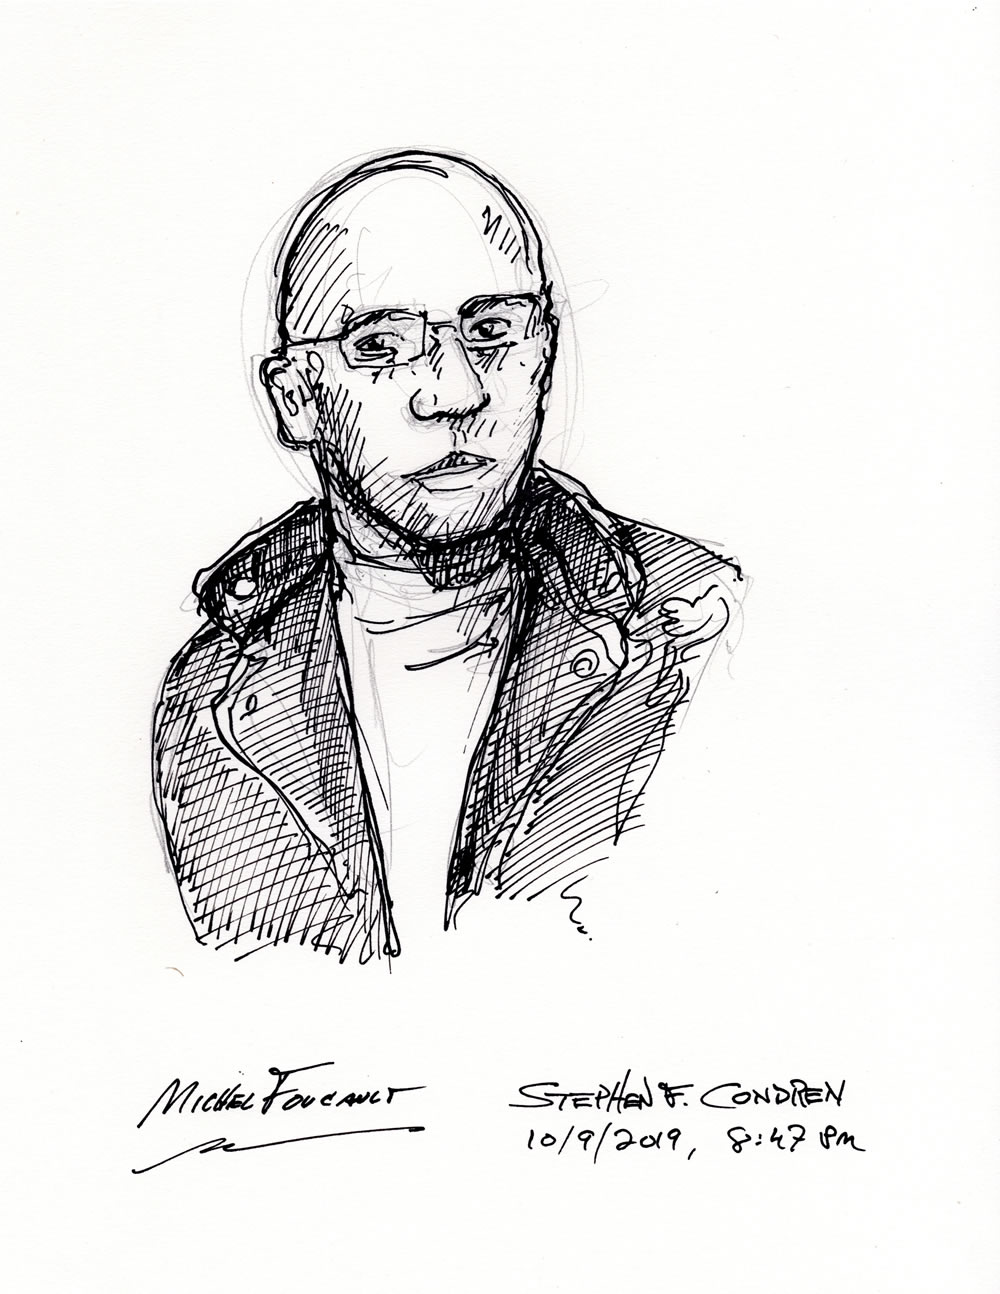 Michel Foucault #440Z, Post Structuralist Philosopher, with pen & ink drawing by artist Stephen F. Condren.